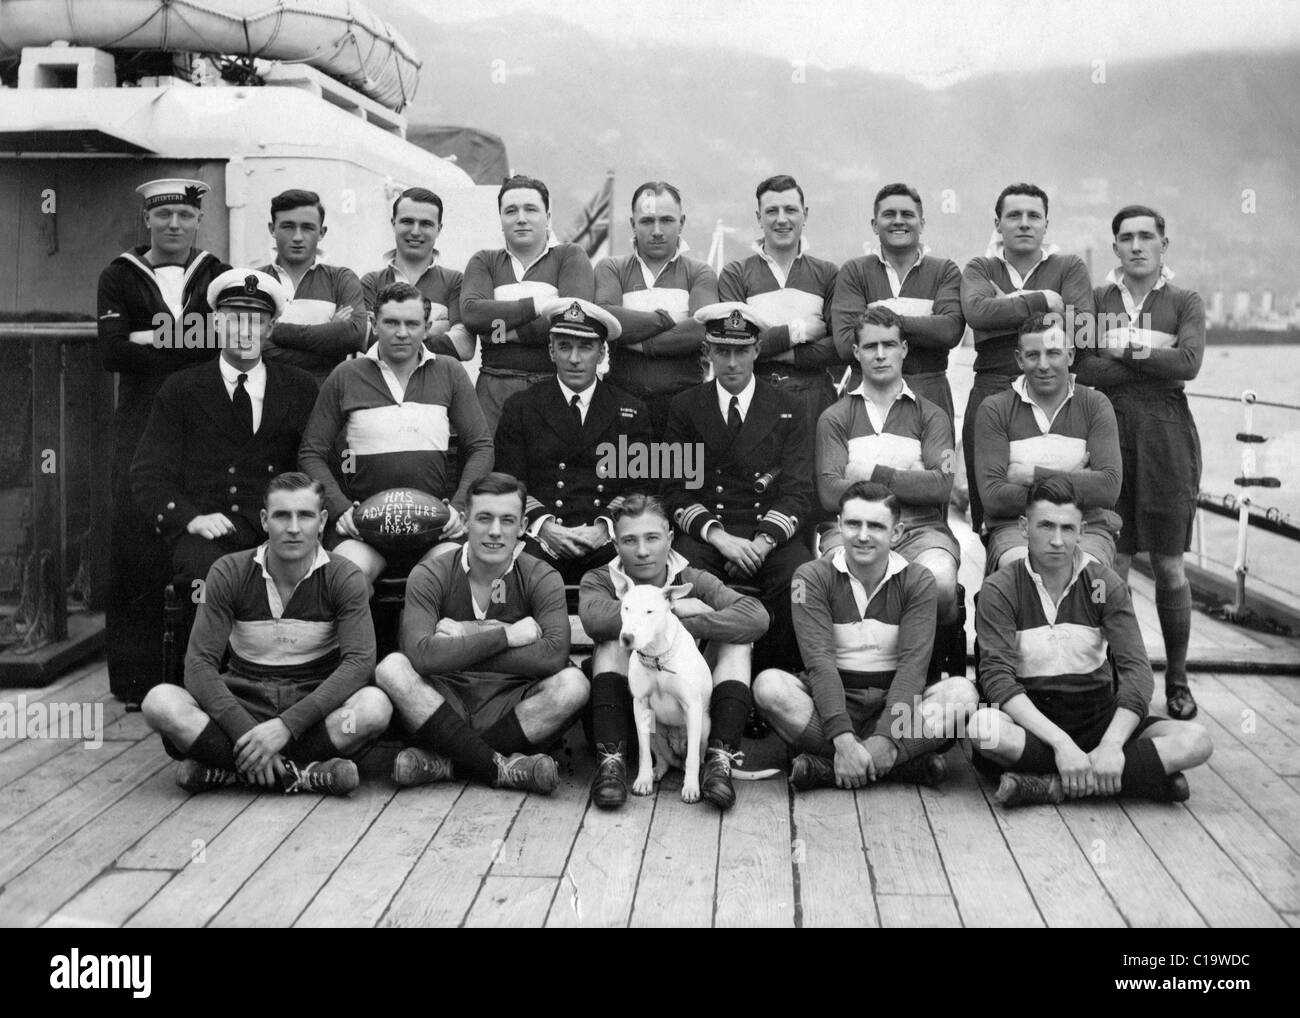 Royal Navy group photo rugby team on deck HMS Adventure 1936-37 thought to be in Hong Kong - Stock Image